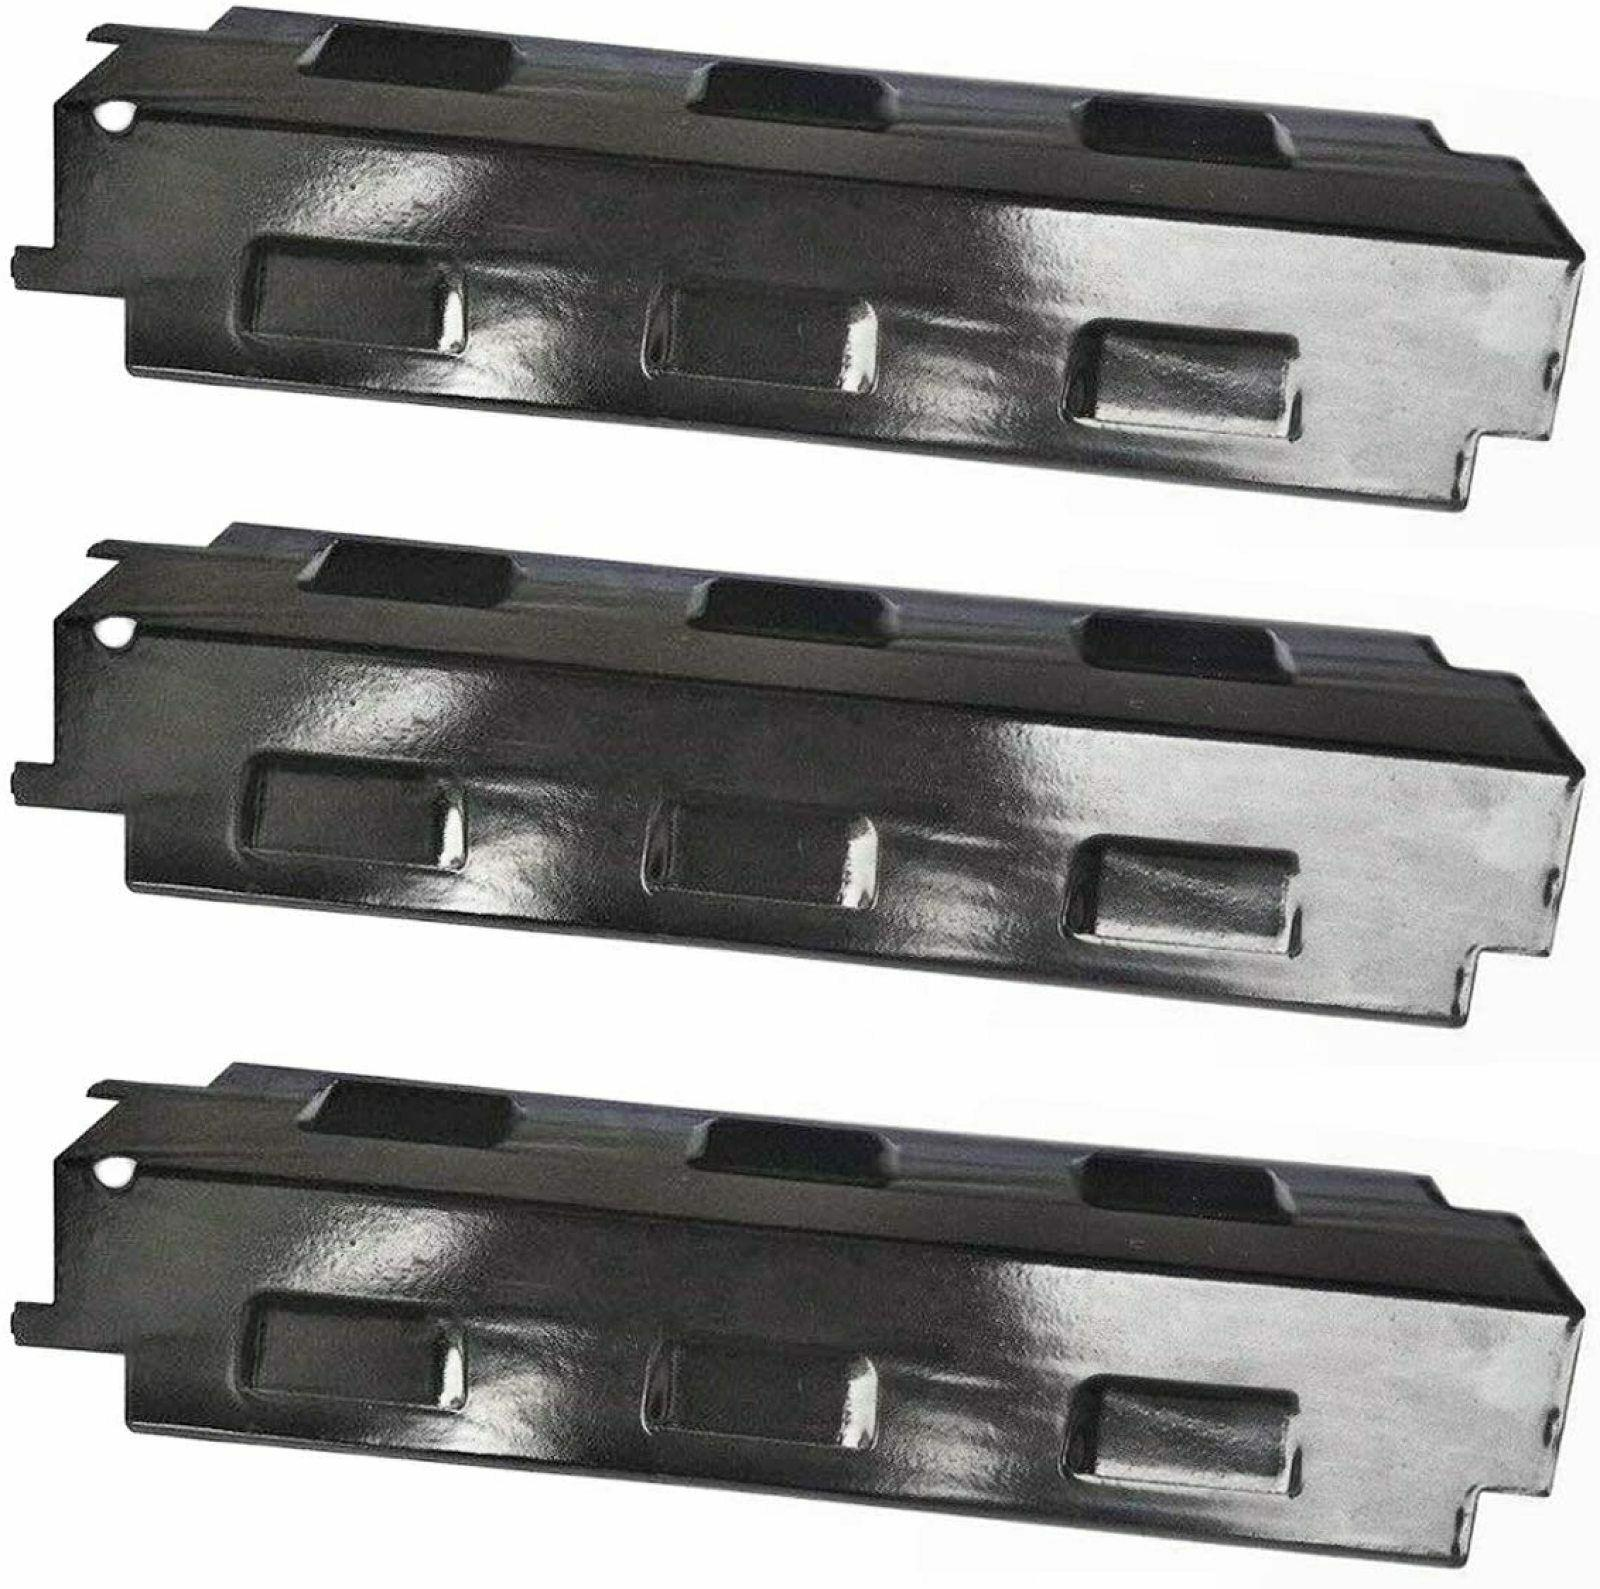 Burner Covers Replacement Hongso 14 5/8'' x 4 1/4'' Gas Gril